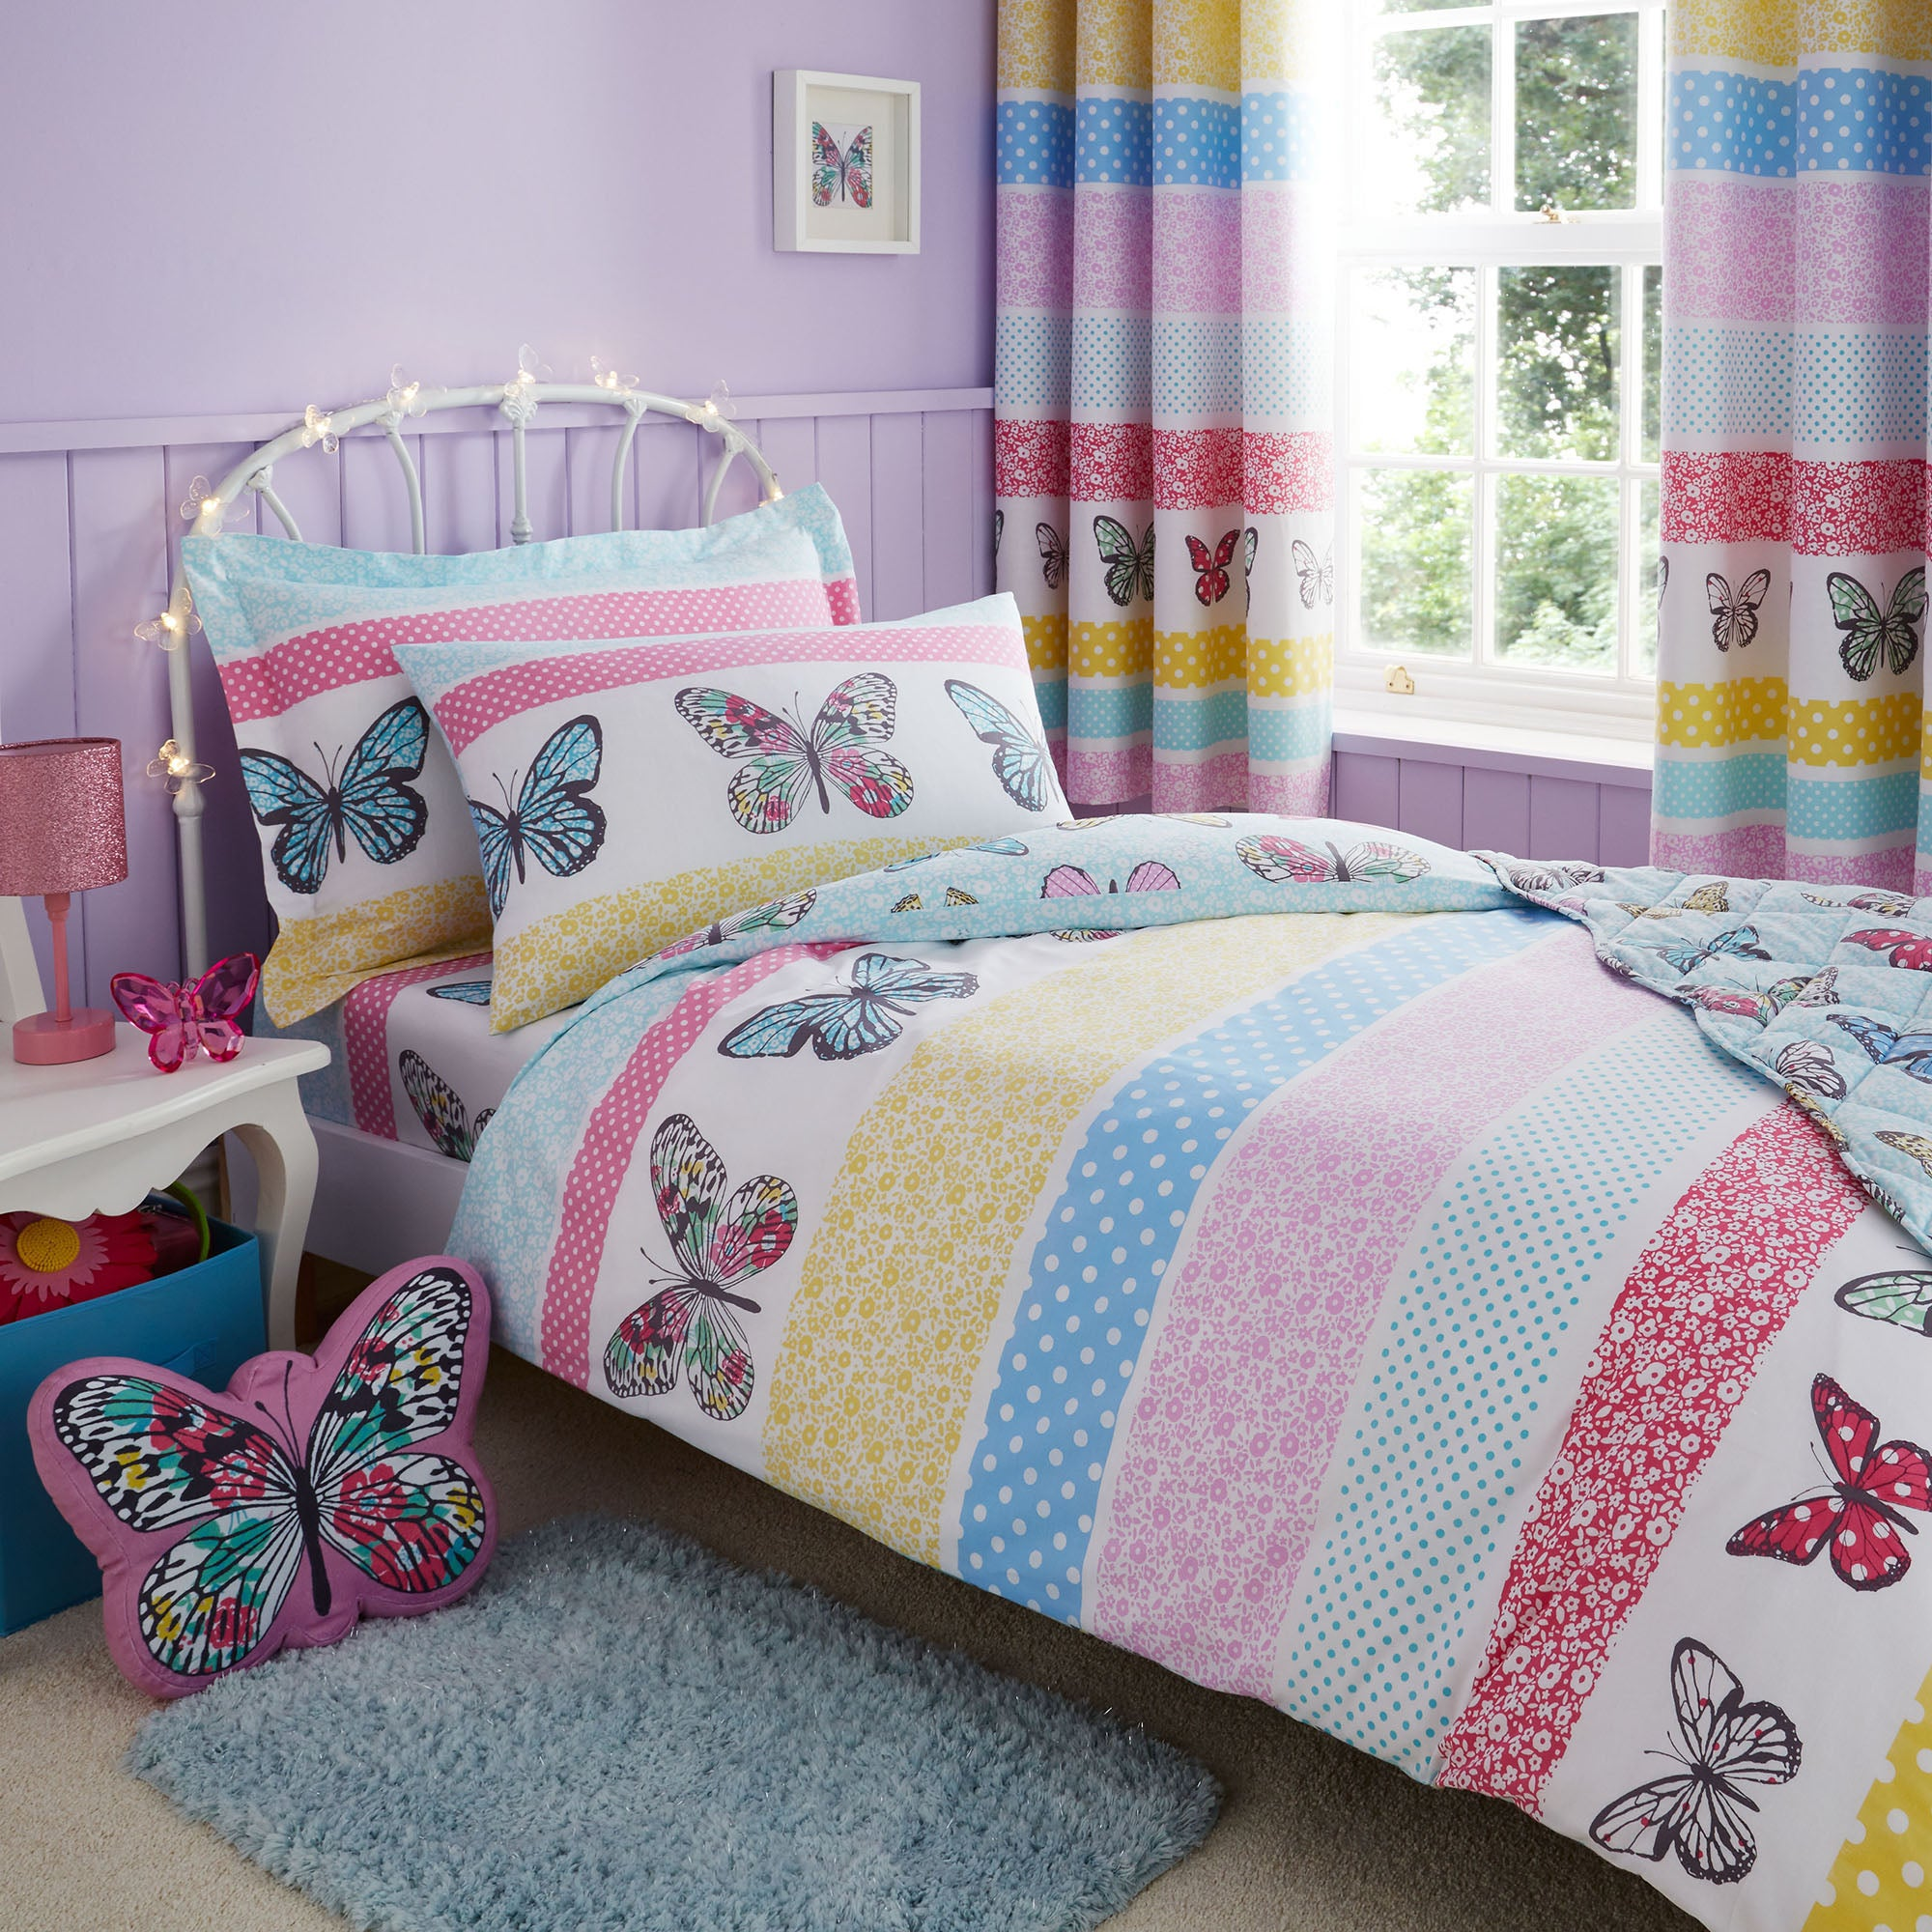 Floral Butterfly Duvet Cover and Pillowcase Set Pink  Blue  Yellow